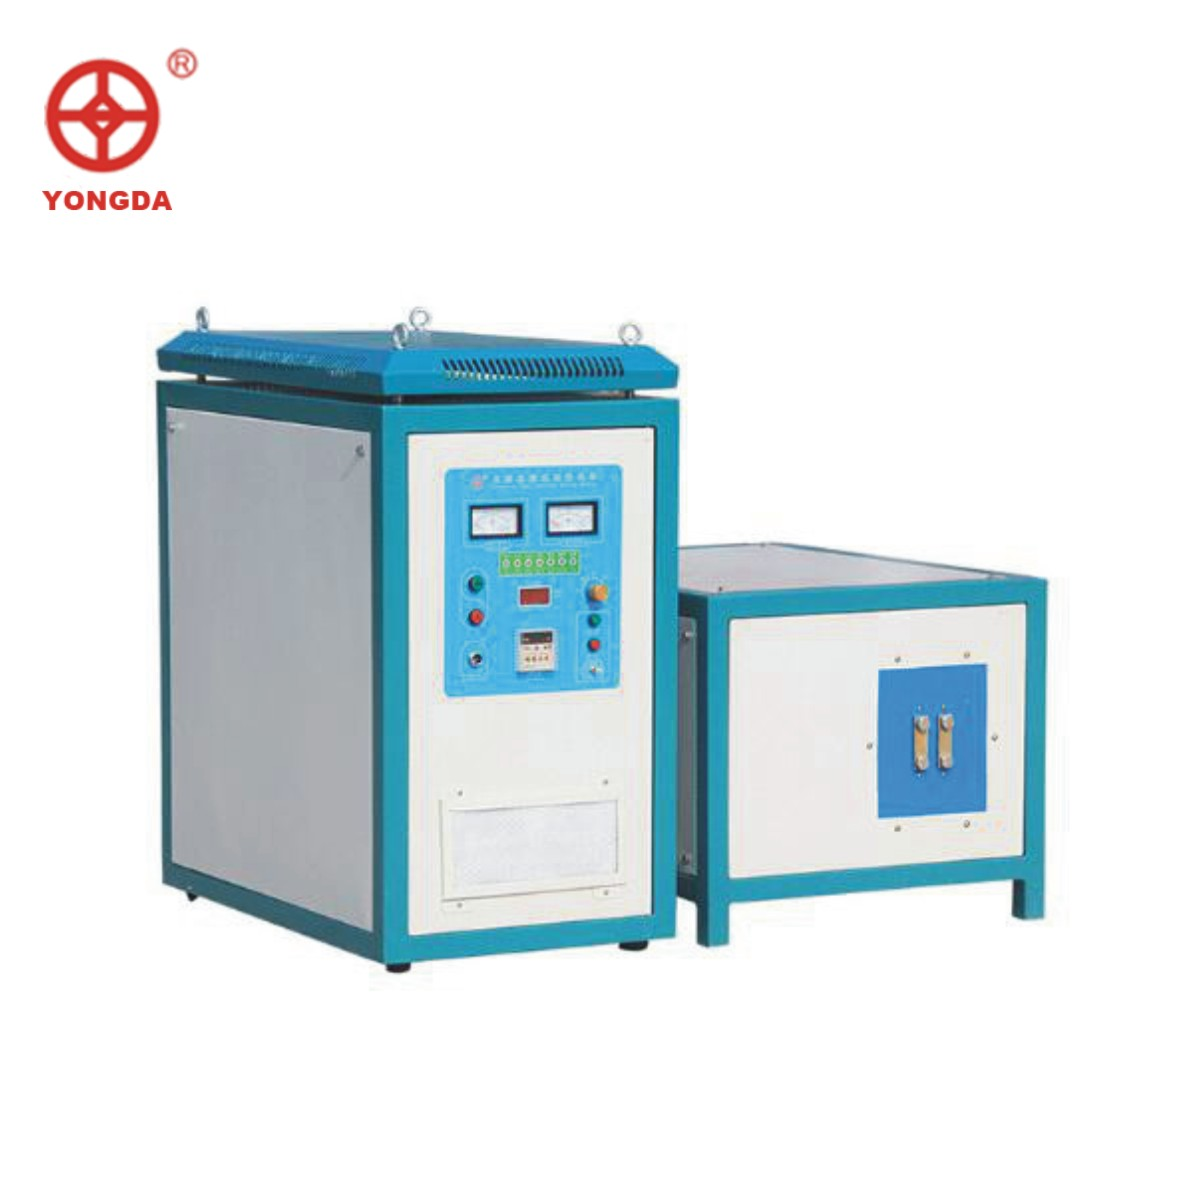 IGBT High frequency induction heating machine